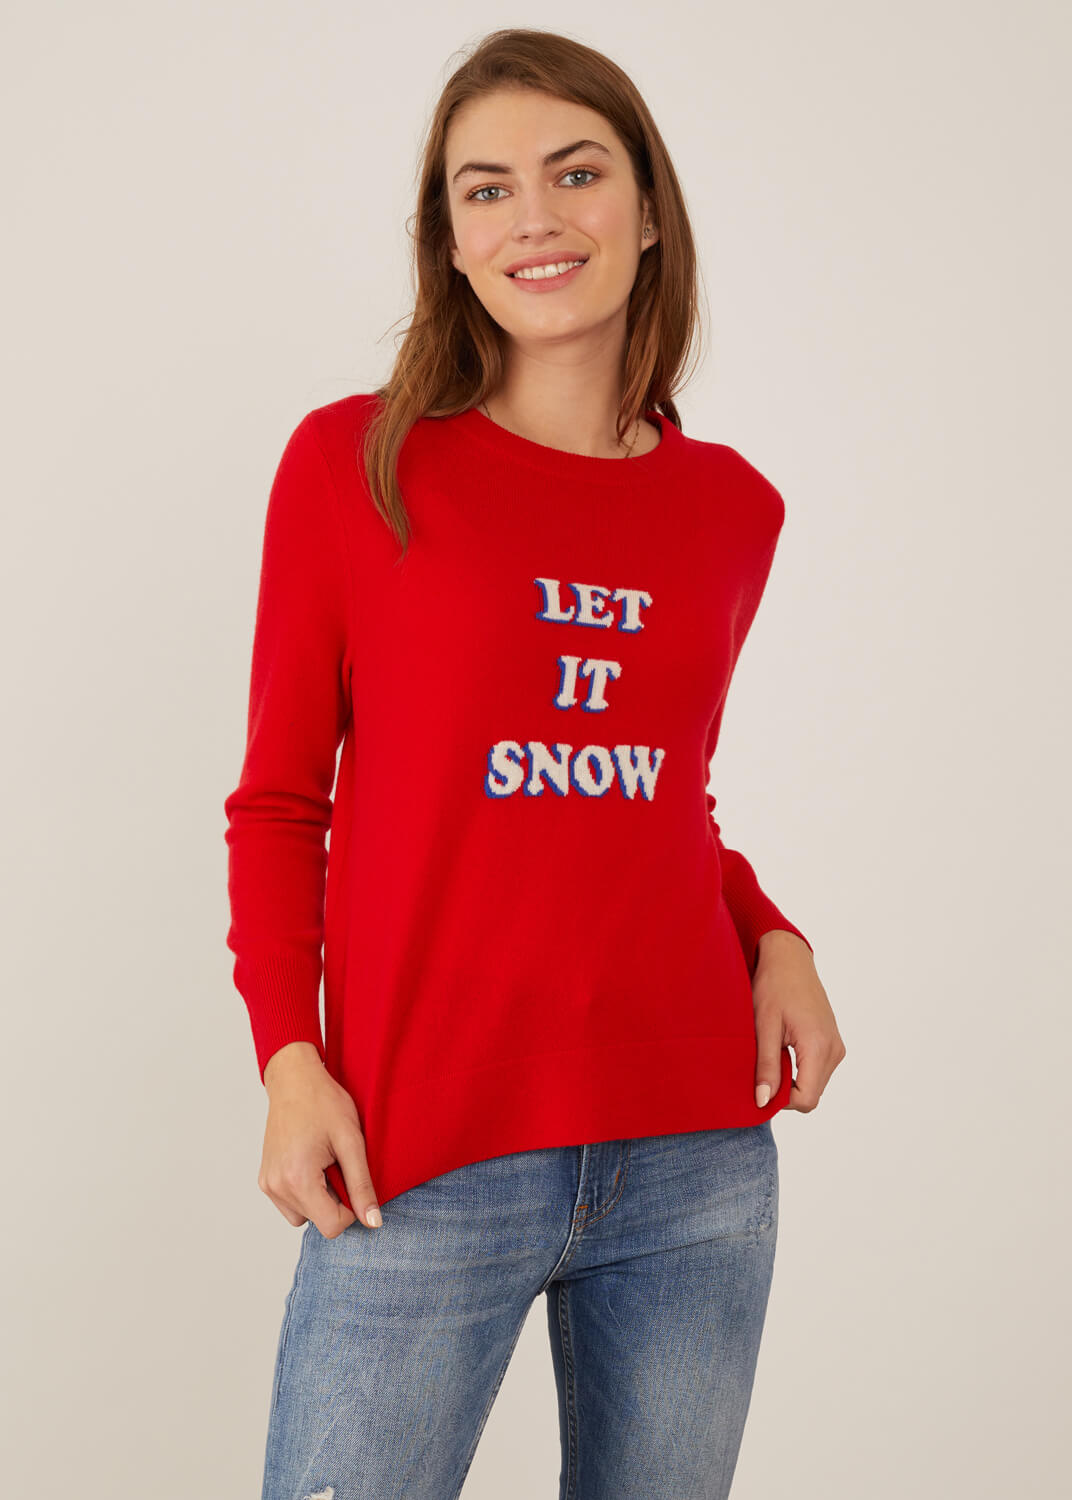 Sophie - Sweater - Let It Snow - Red